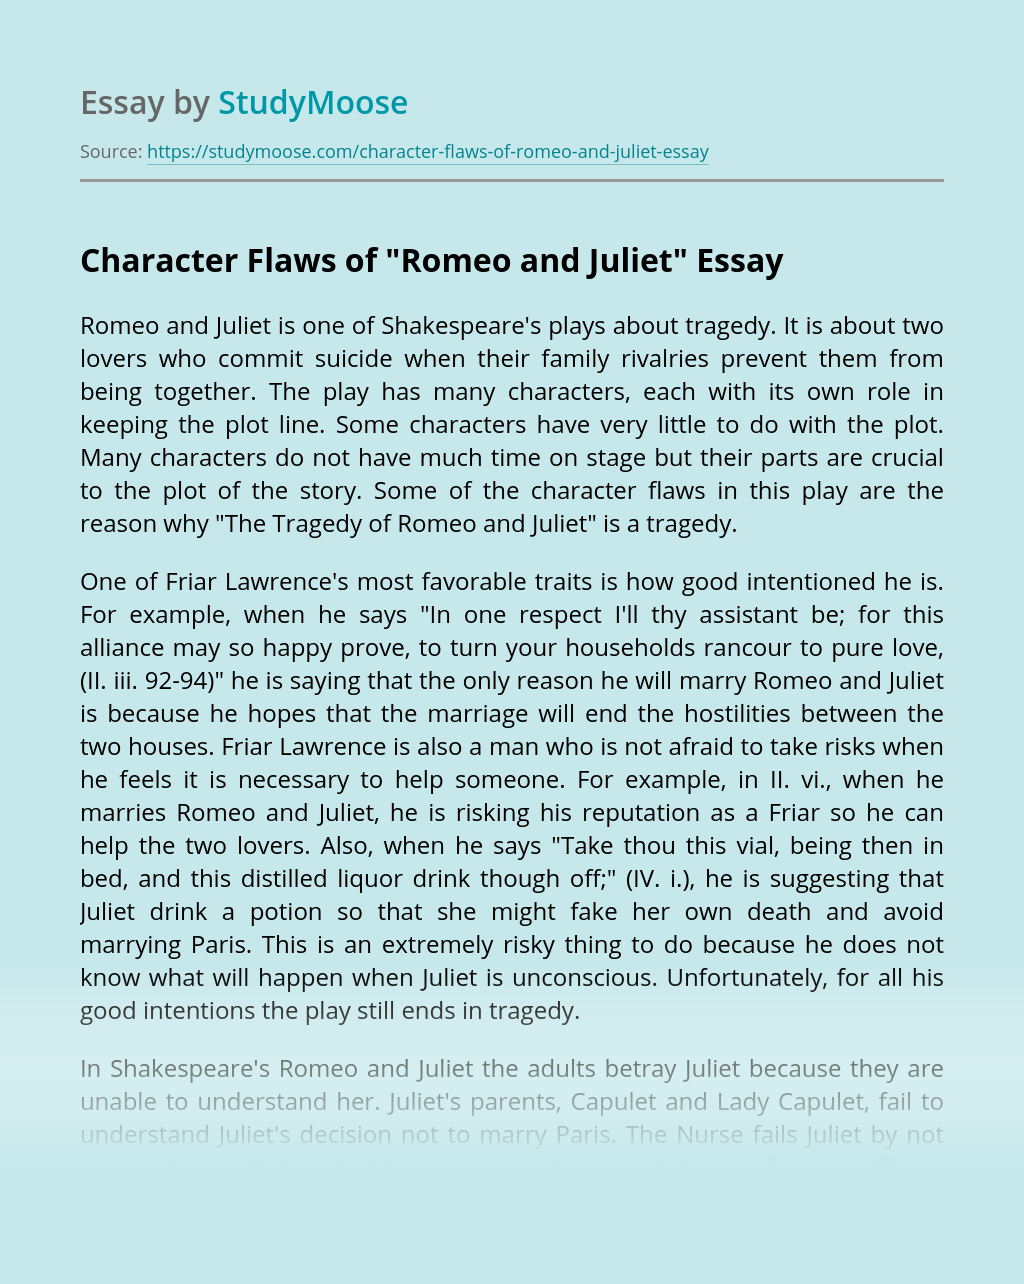 Character Flaws of